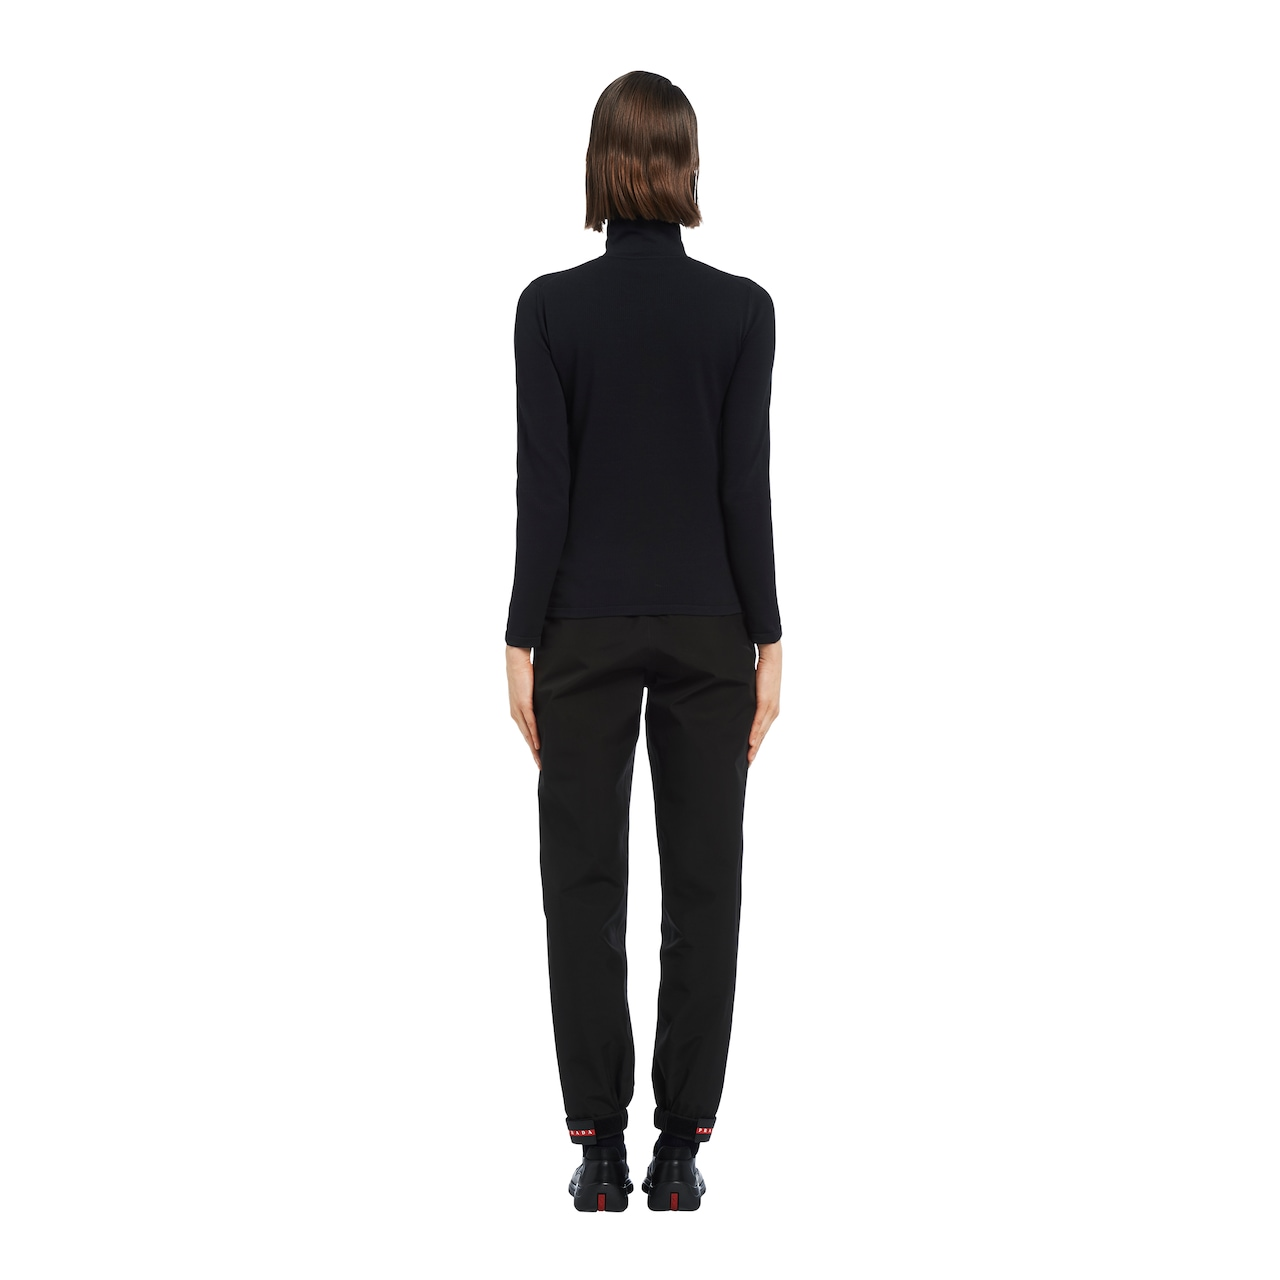 Nylon turtleneck sweater